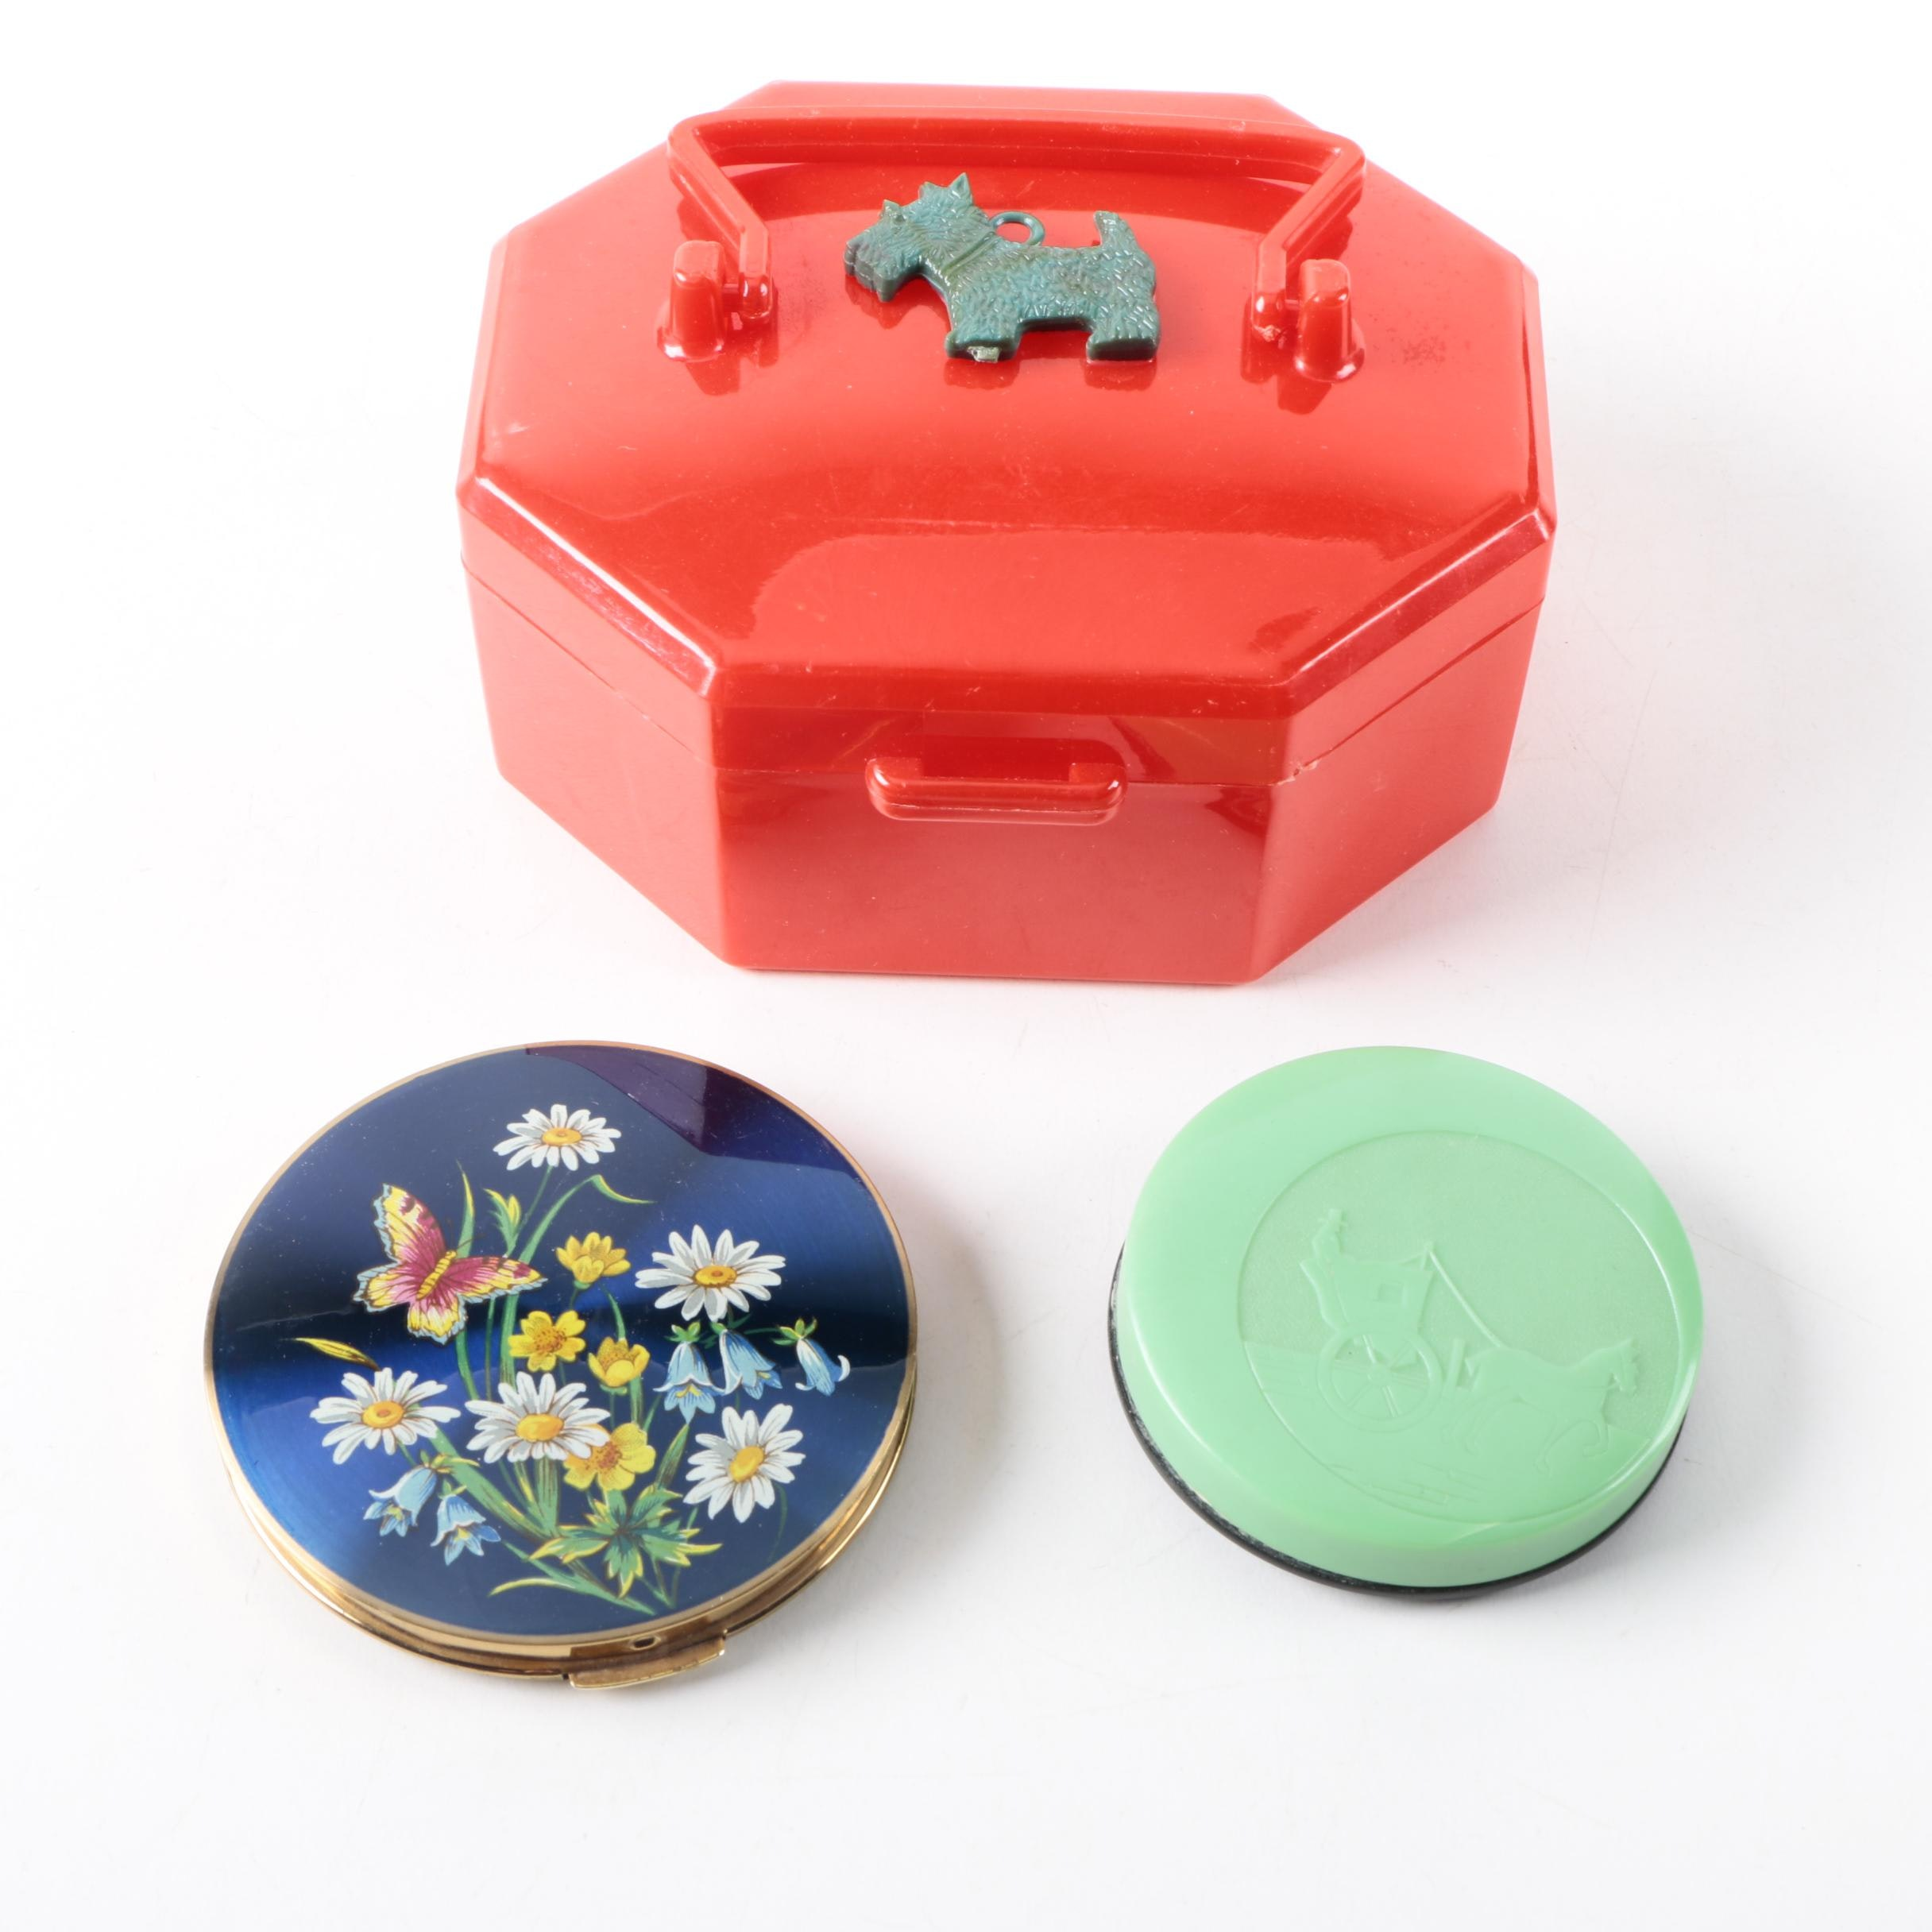 Red Scotty Dog Child's Purse and Compacts